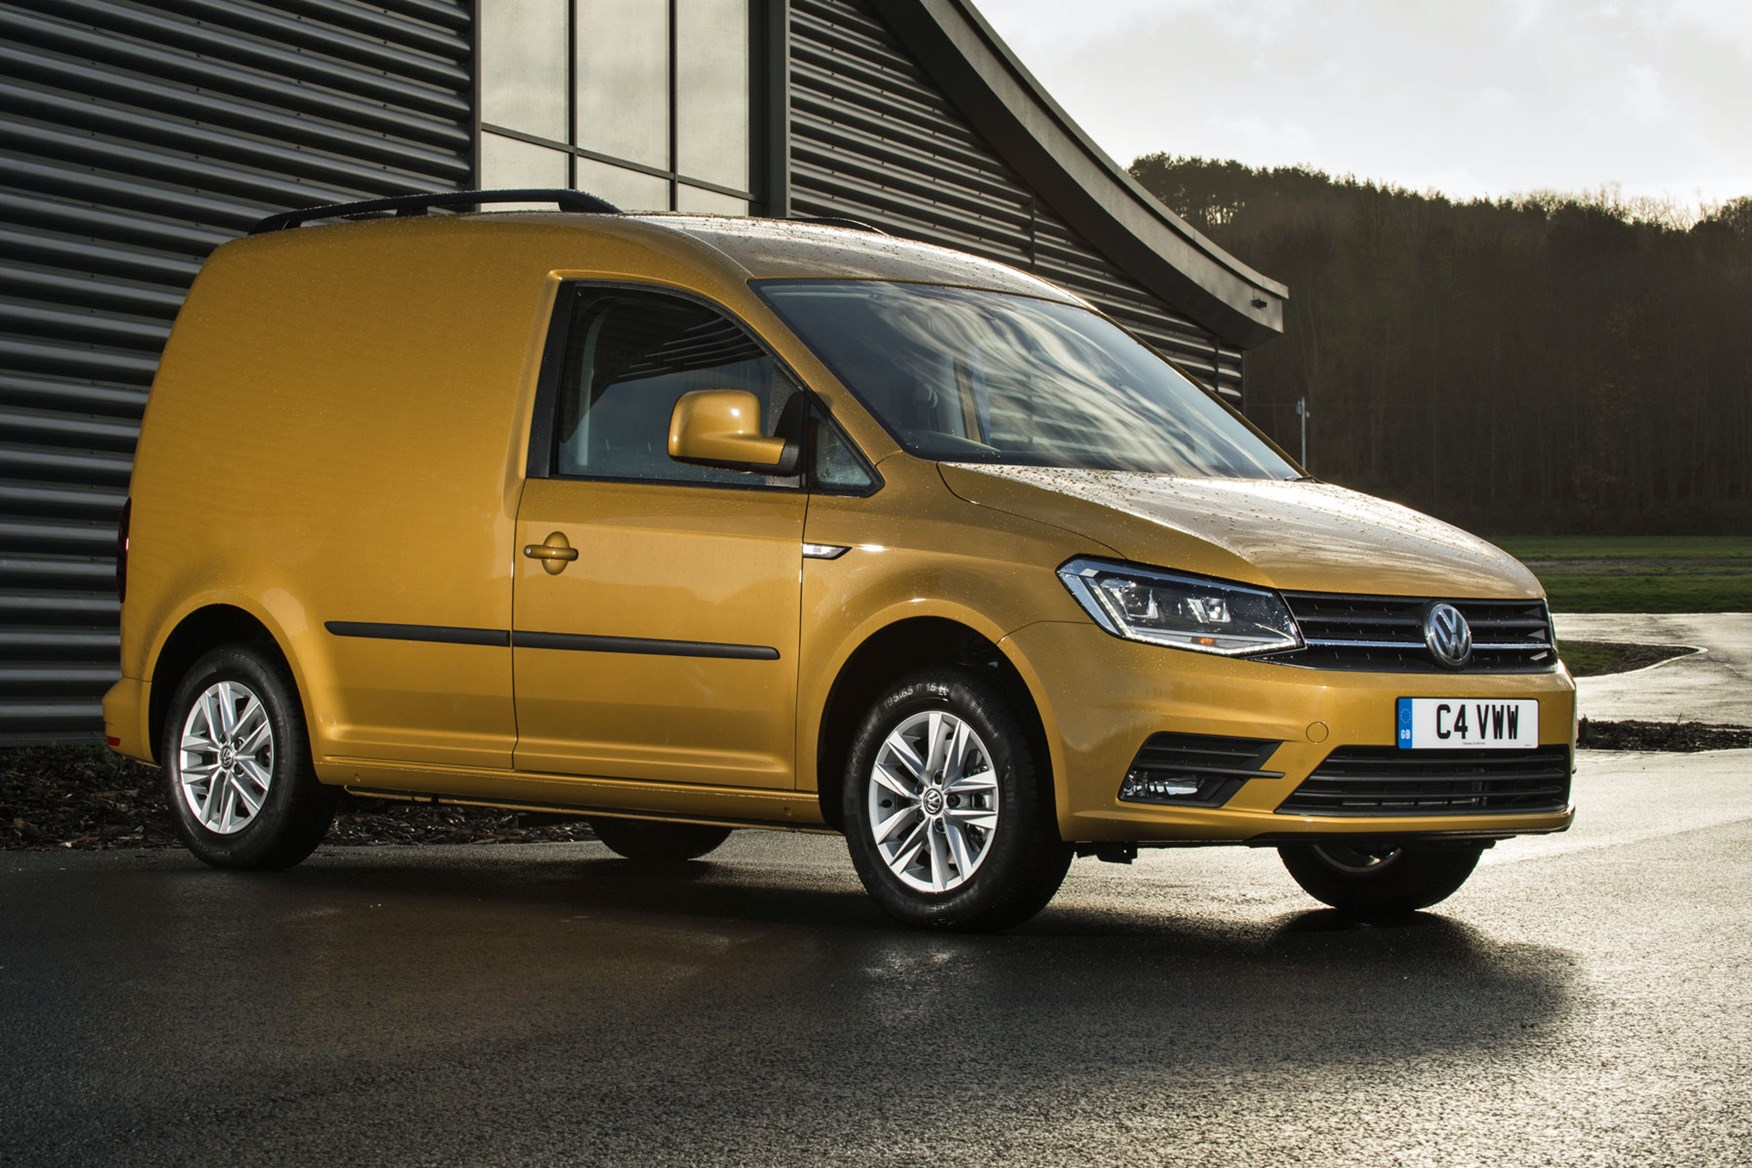 VW Caddy review - 2018 model, front view, yellow